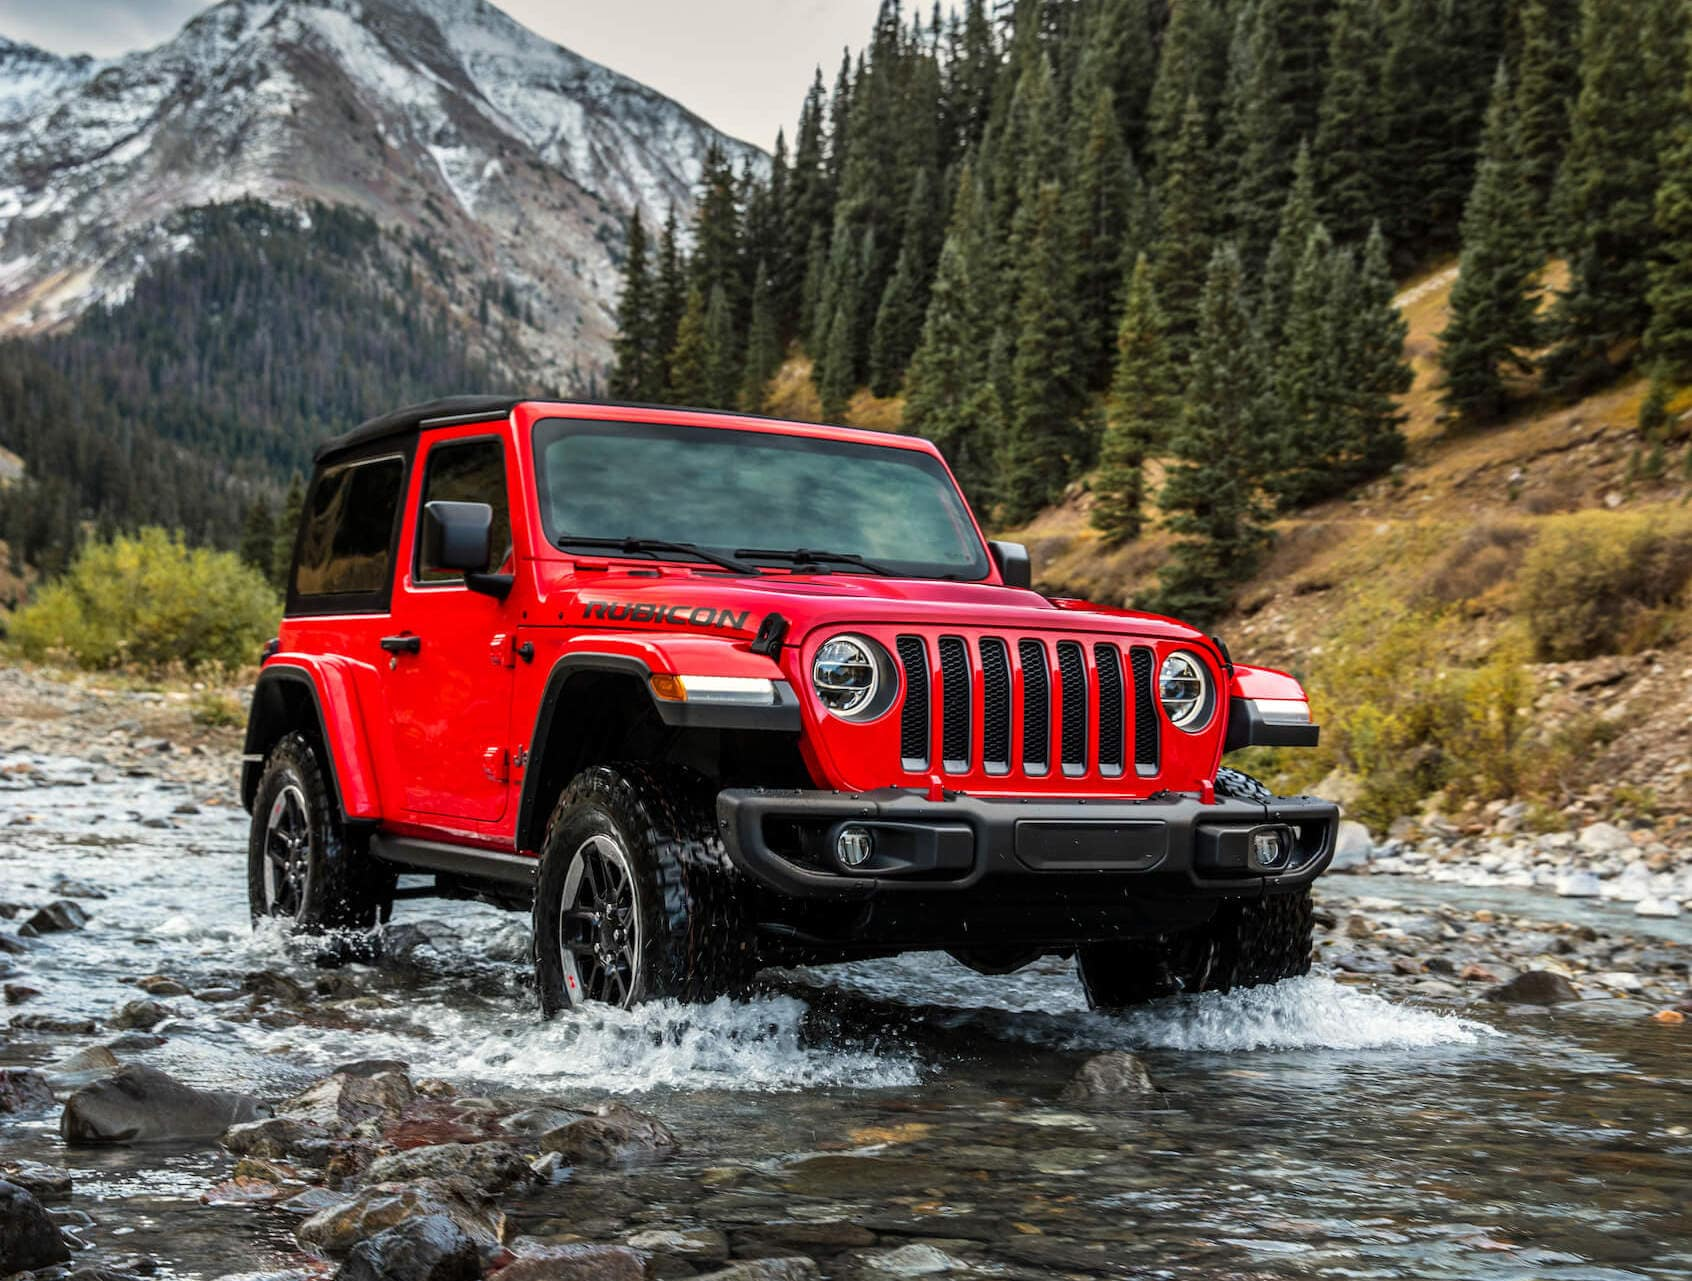 Learn More About the 2021 Jeep Wrangler 4xe